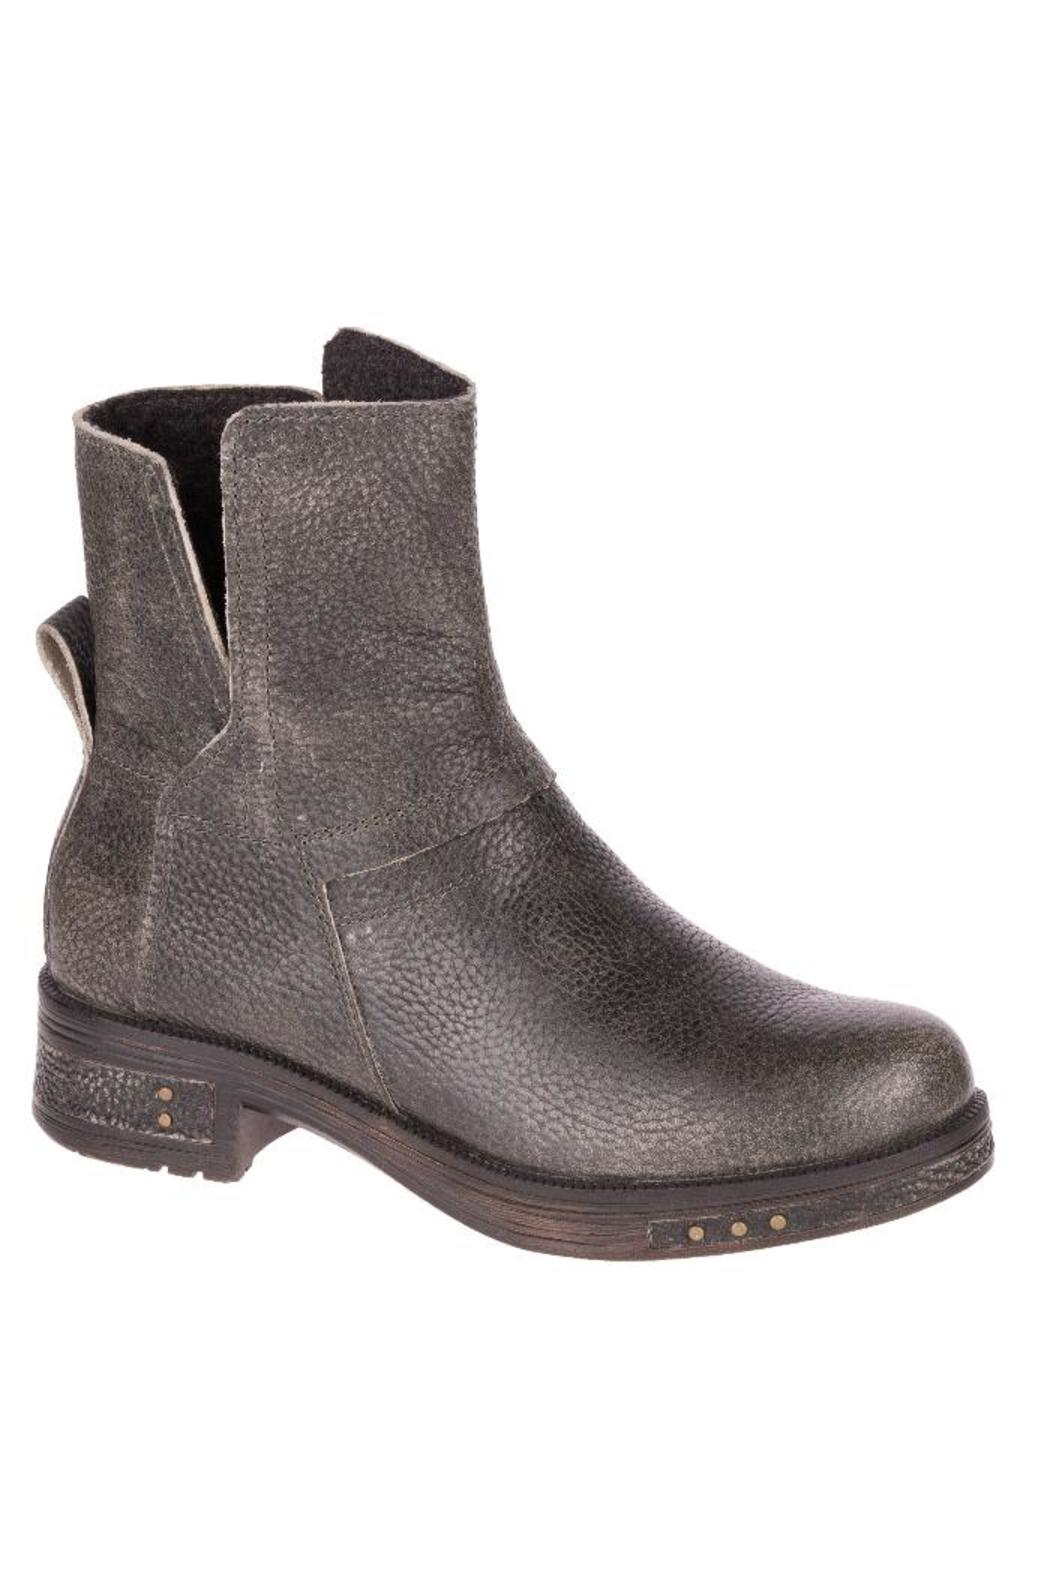 Cat Footwear Pixley Boot - Front Full Image